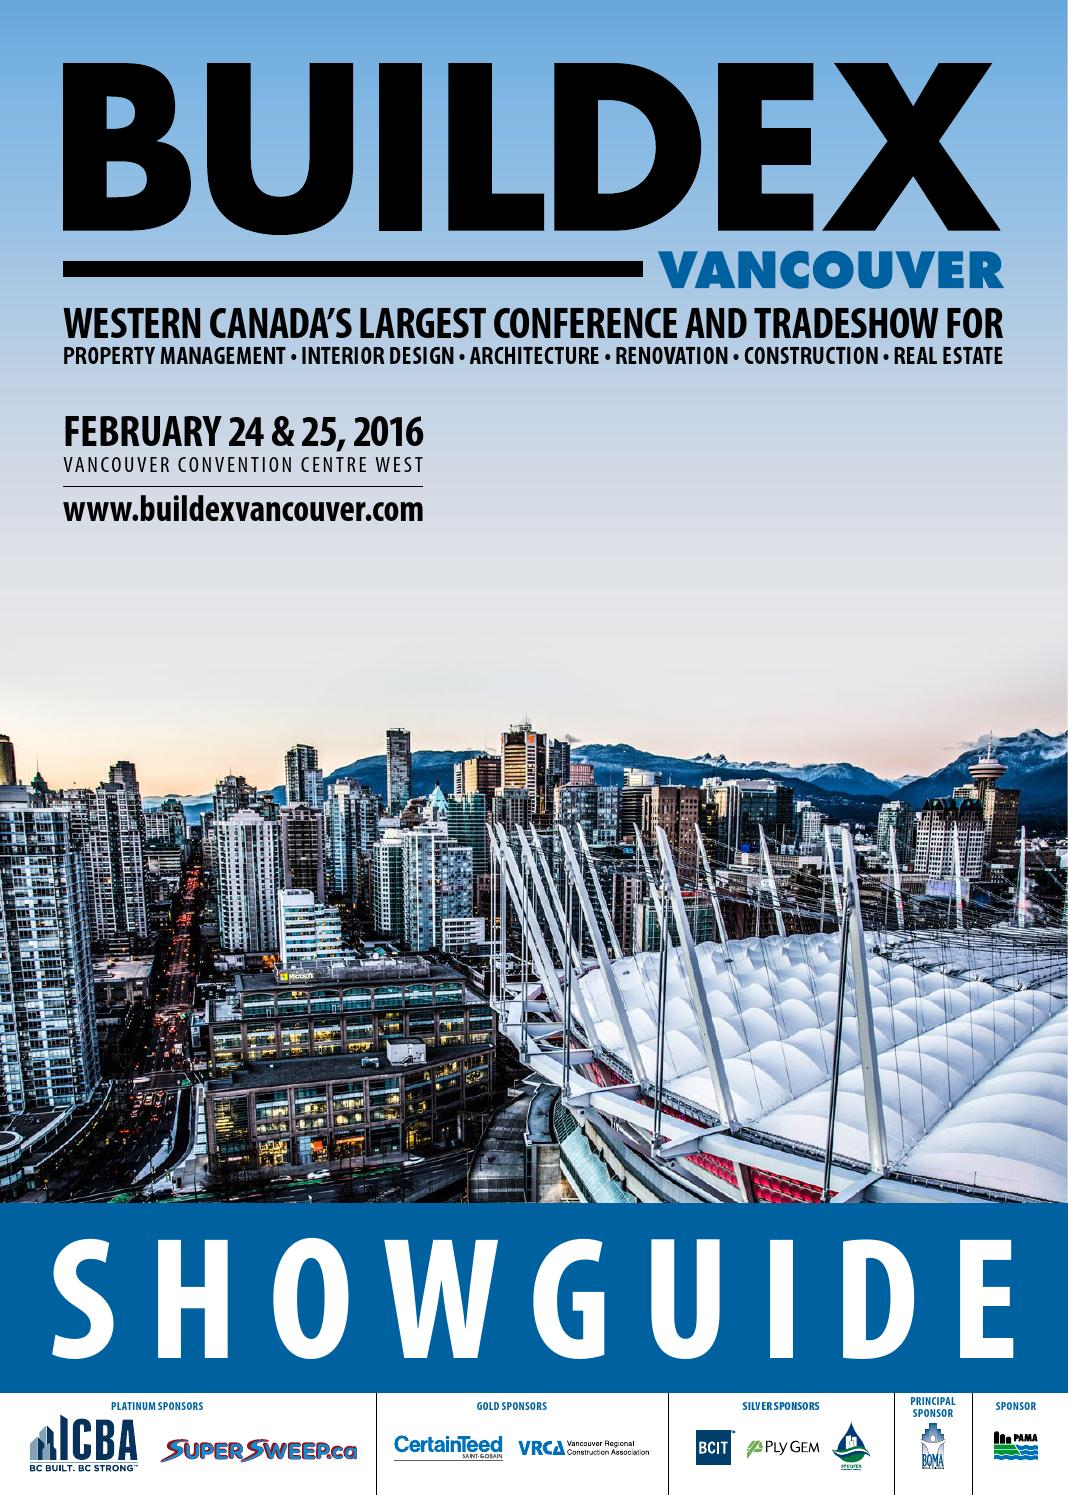 BUILDEX Vancouver 2016 Showguide By Informa